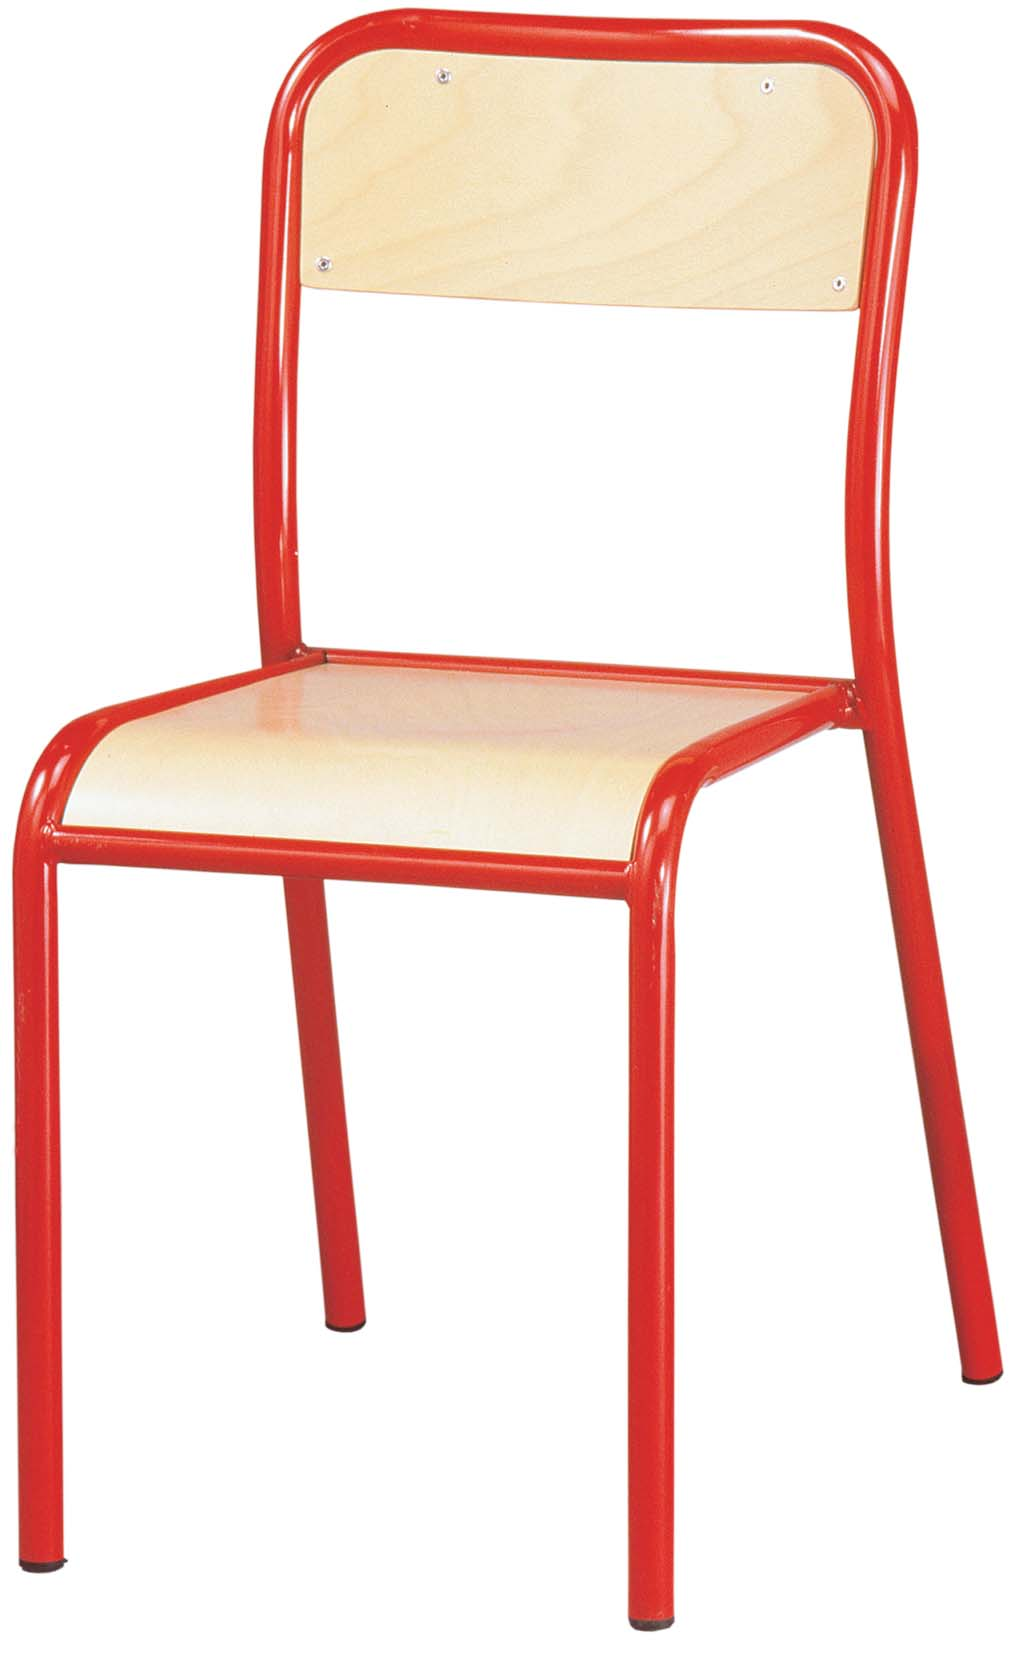 Chaise scolaire 401